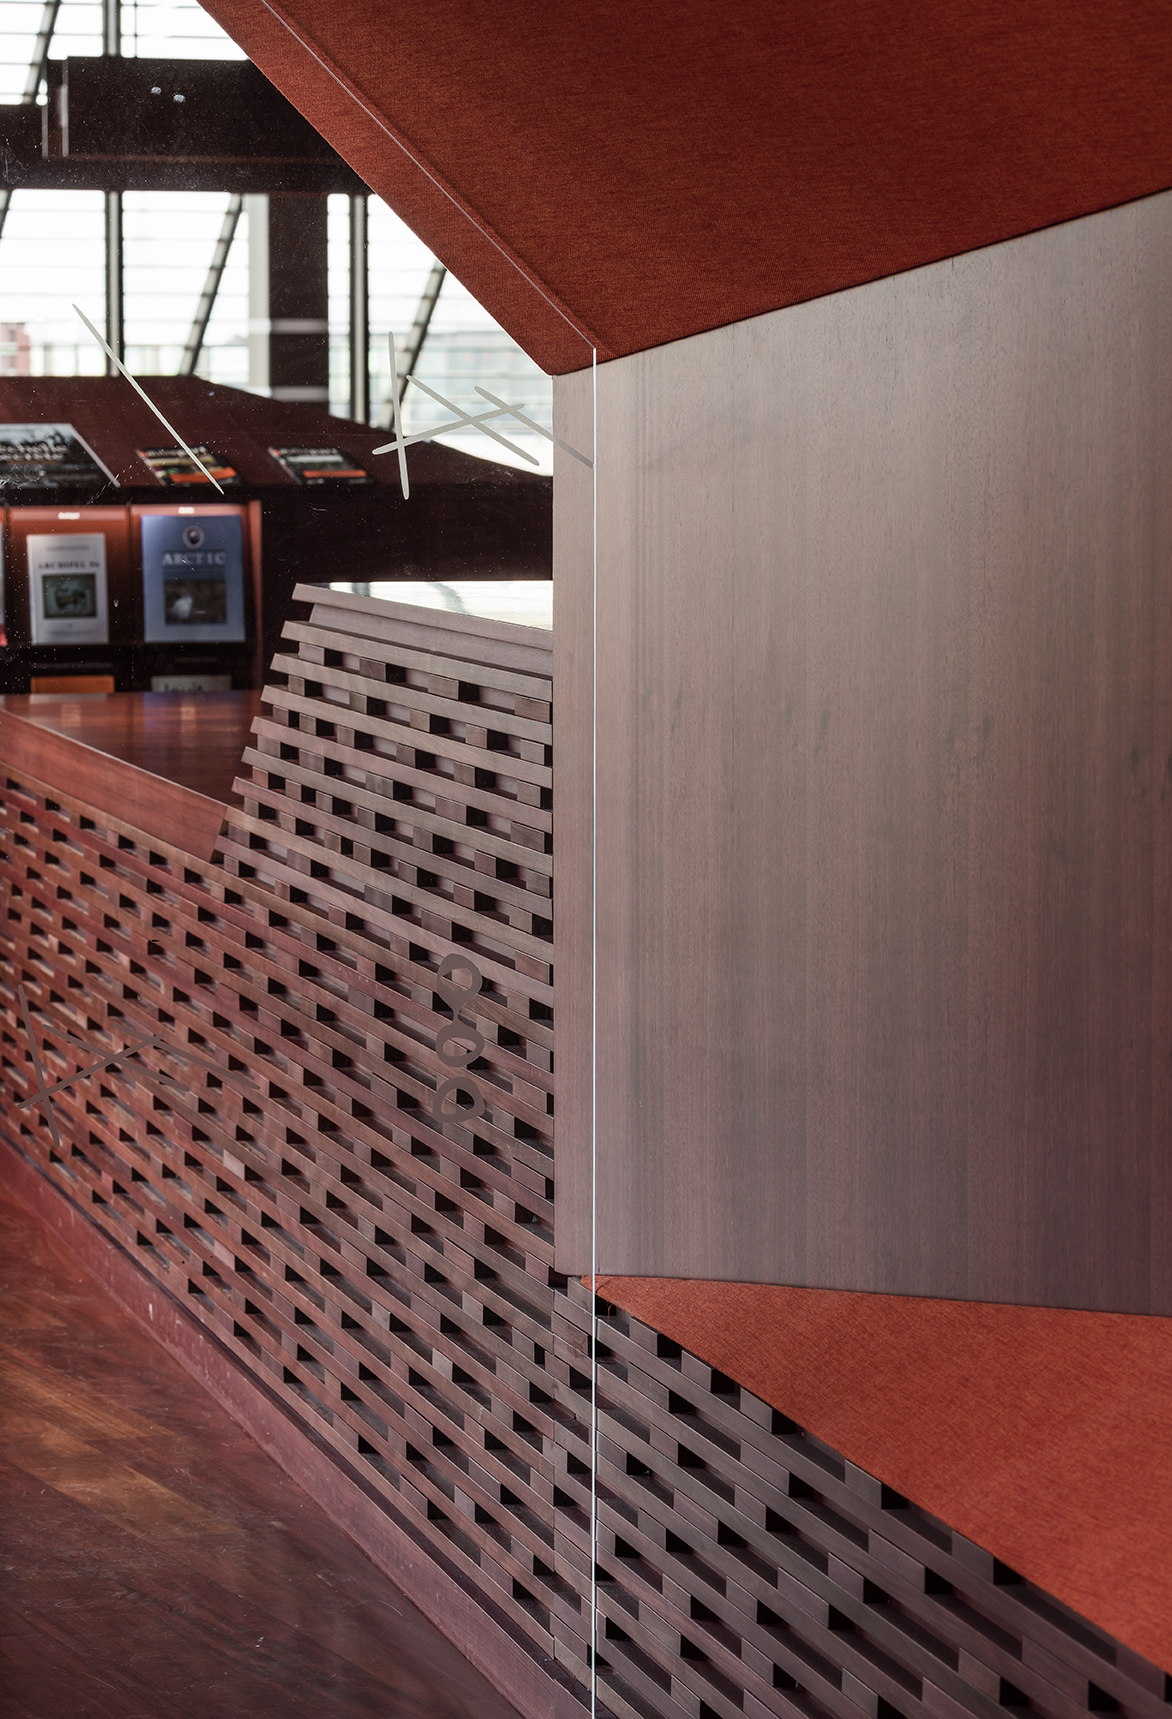 MEDIATHEQUE_QUAI_BRANLY-033.jpg